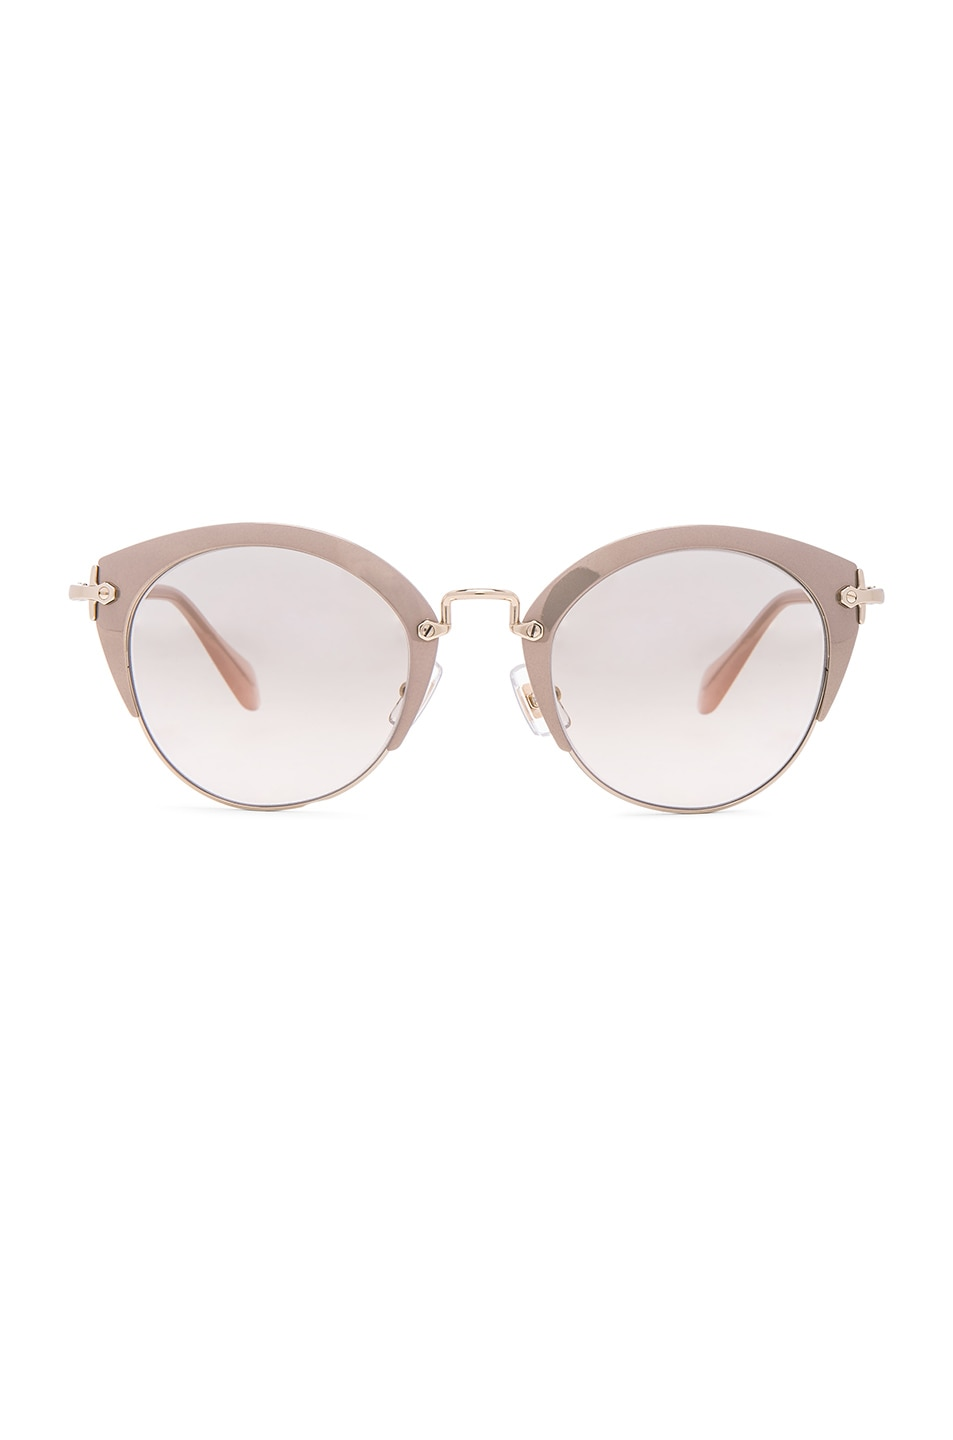 Image 1 of Miu Miu Round Cat Eye Sunglasses in Mirror Pink & Pale Gold